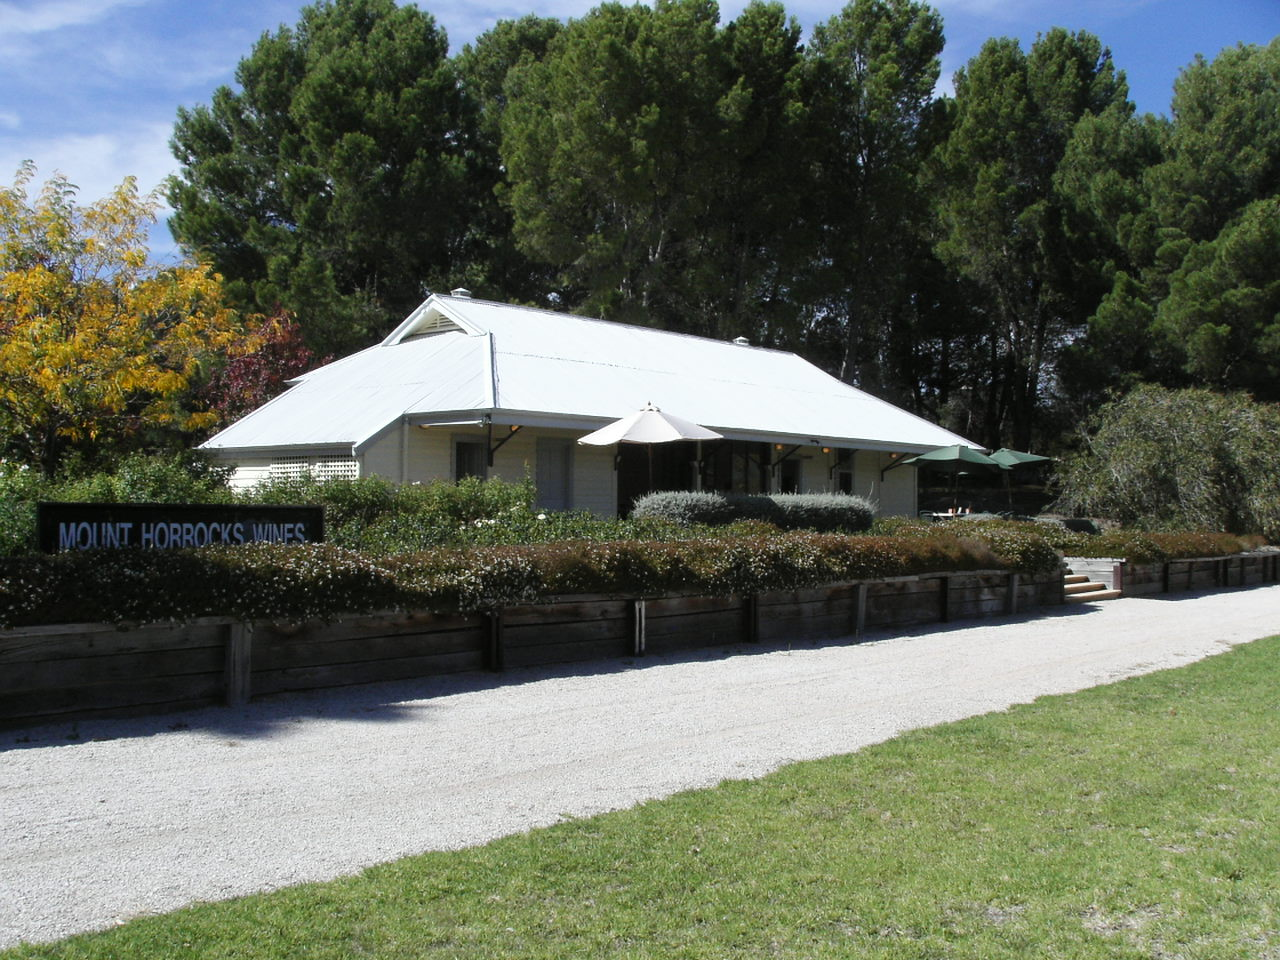 Mount Horrocks Wines Archives Adelaide Chauffeur And Tours